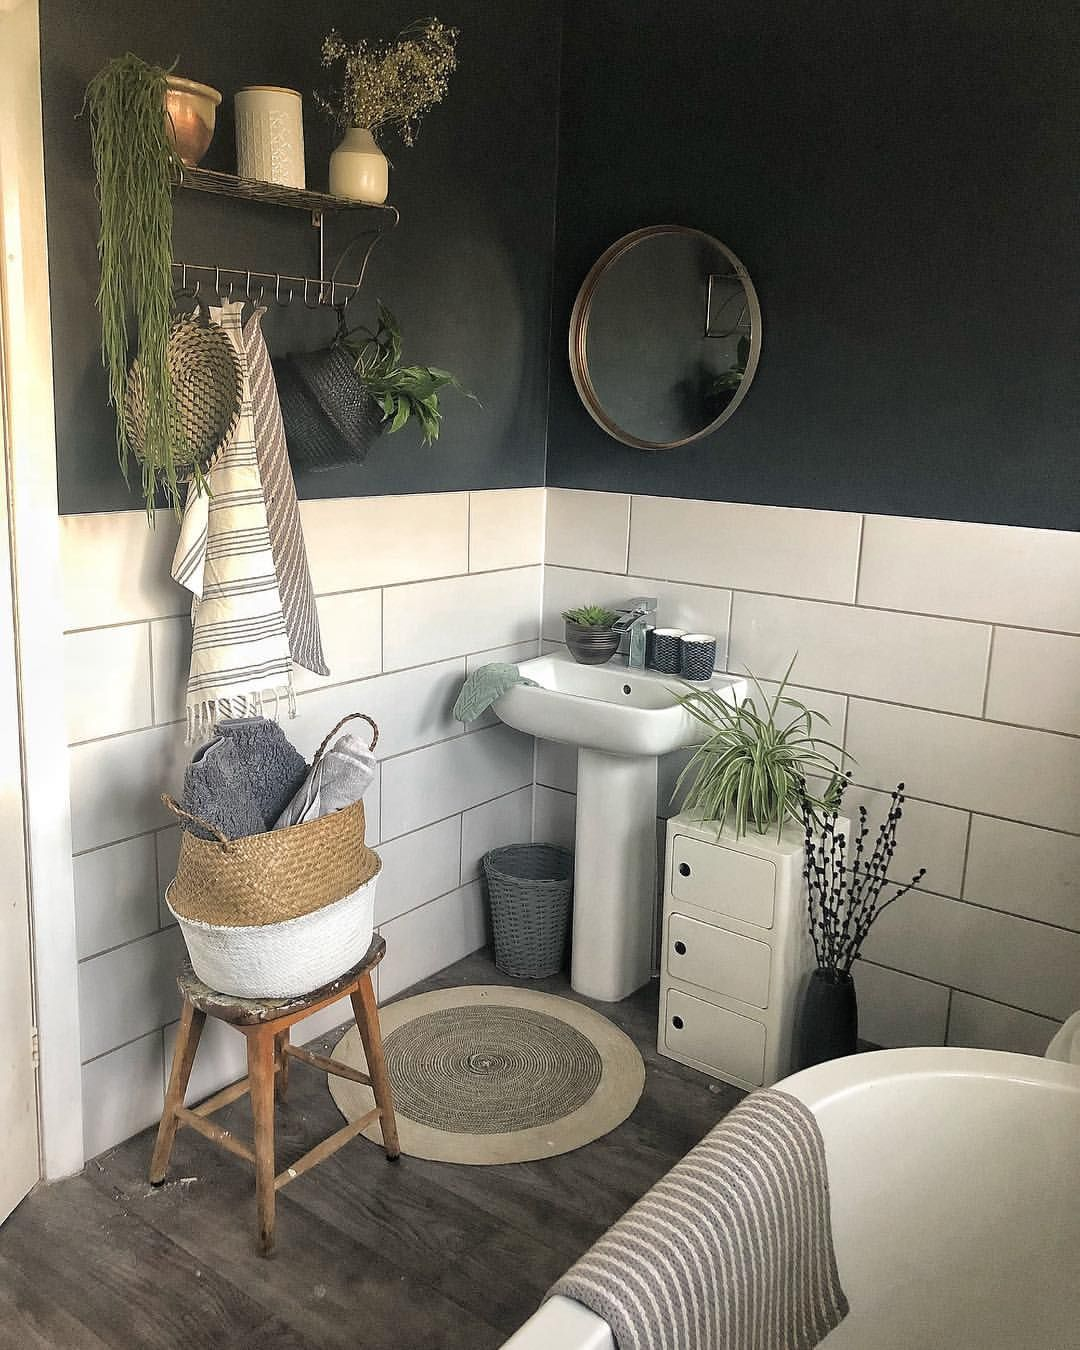 badezimmer wei e fliesen anthrazit pflanzen korb holz in 2019 gray bathroom walls white